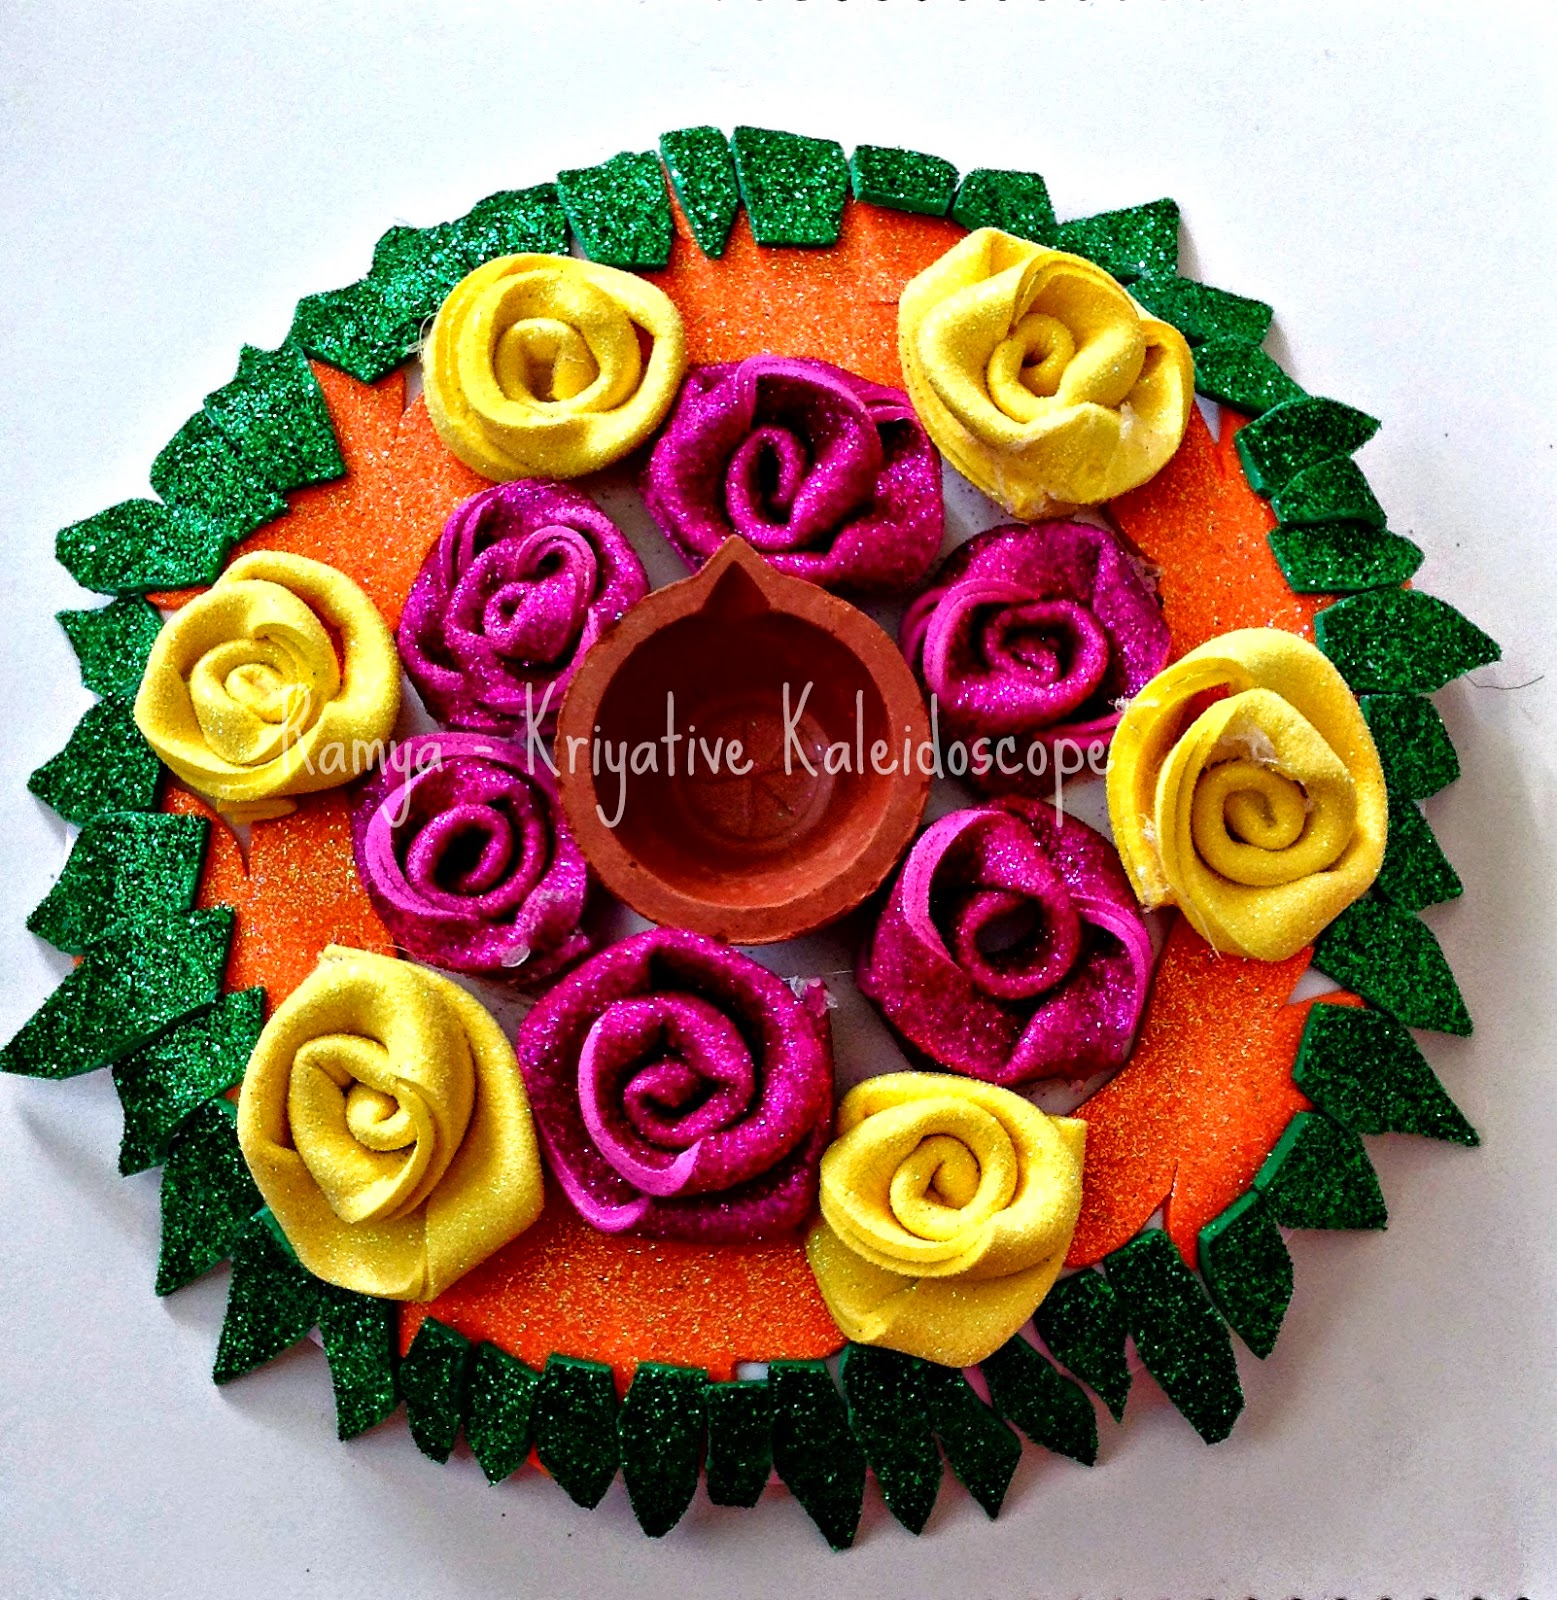 Diya Platter Using Glitter Foam Sheets Kriya Tive Kaleidoscope